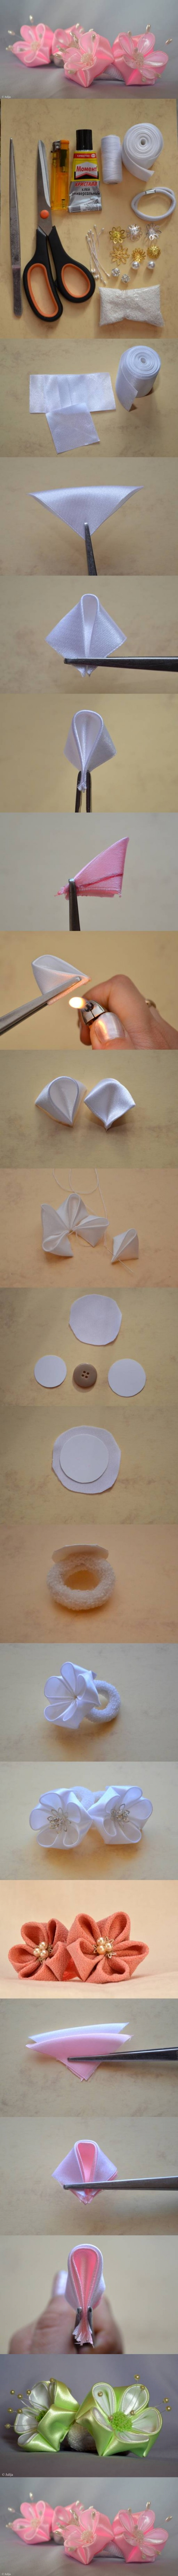 How to make Round Petals Ribbon Flower DIY tutorial instructions